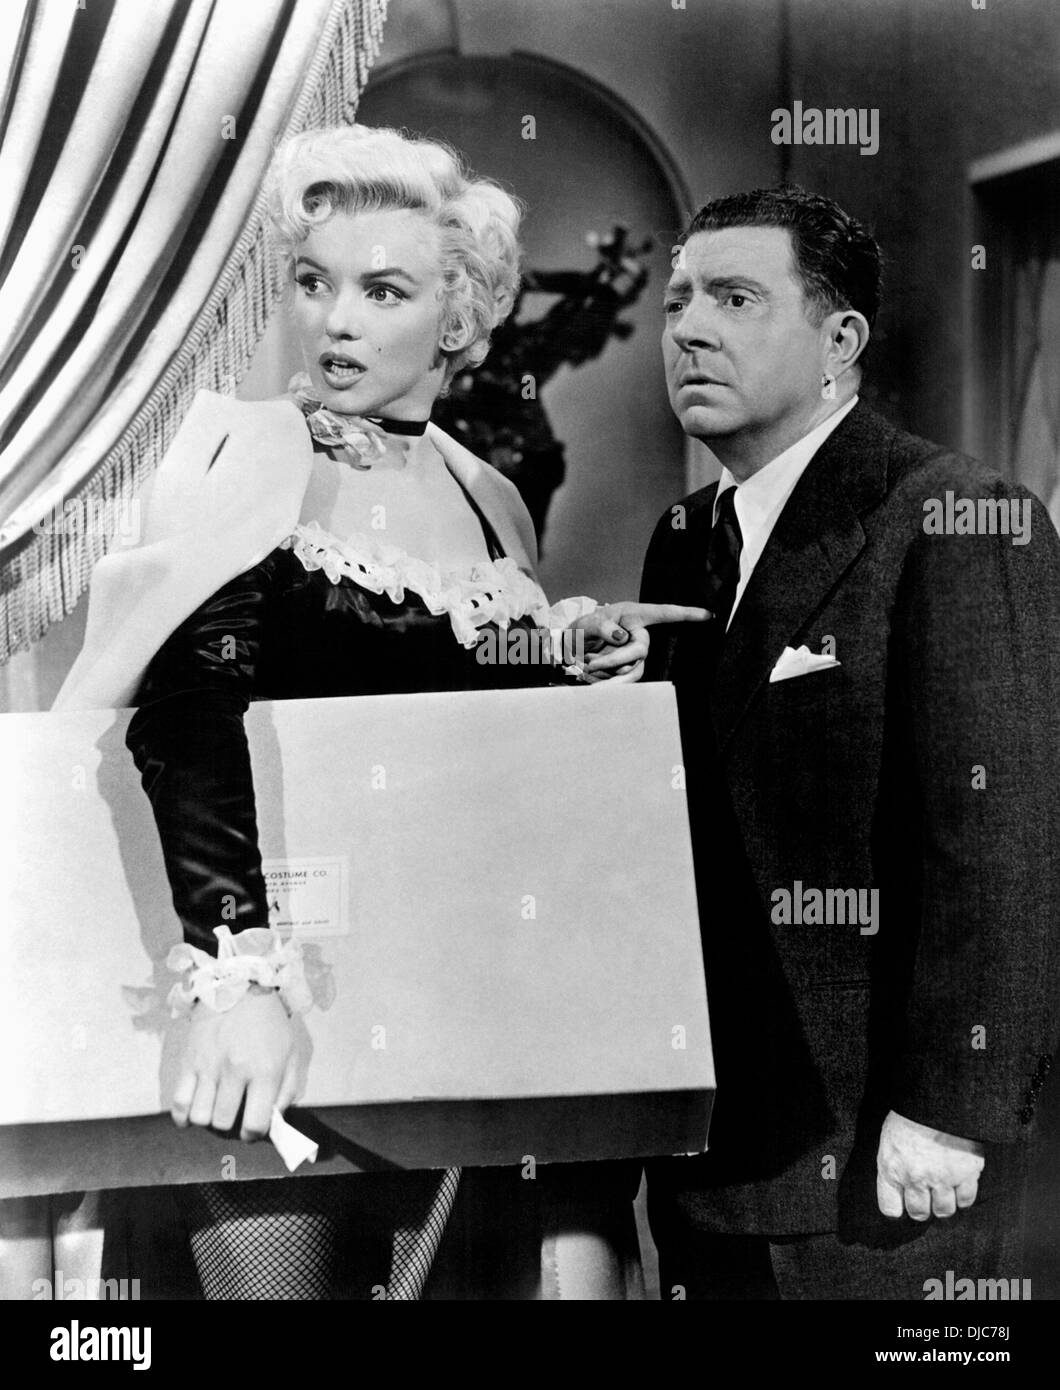 Marilyn Monroe and Frank McHugh on-set of the Film, There's No Business Like Show Business, 1954, 20th Century - Stock Image